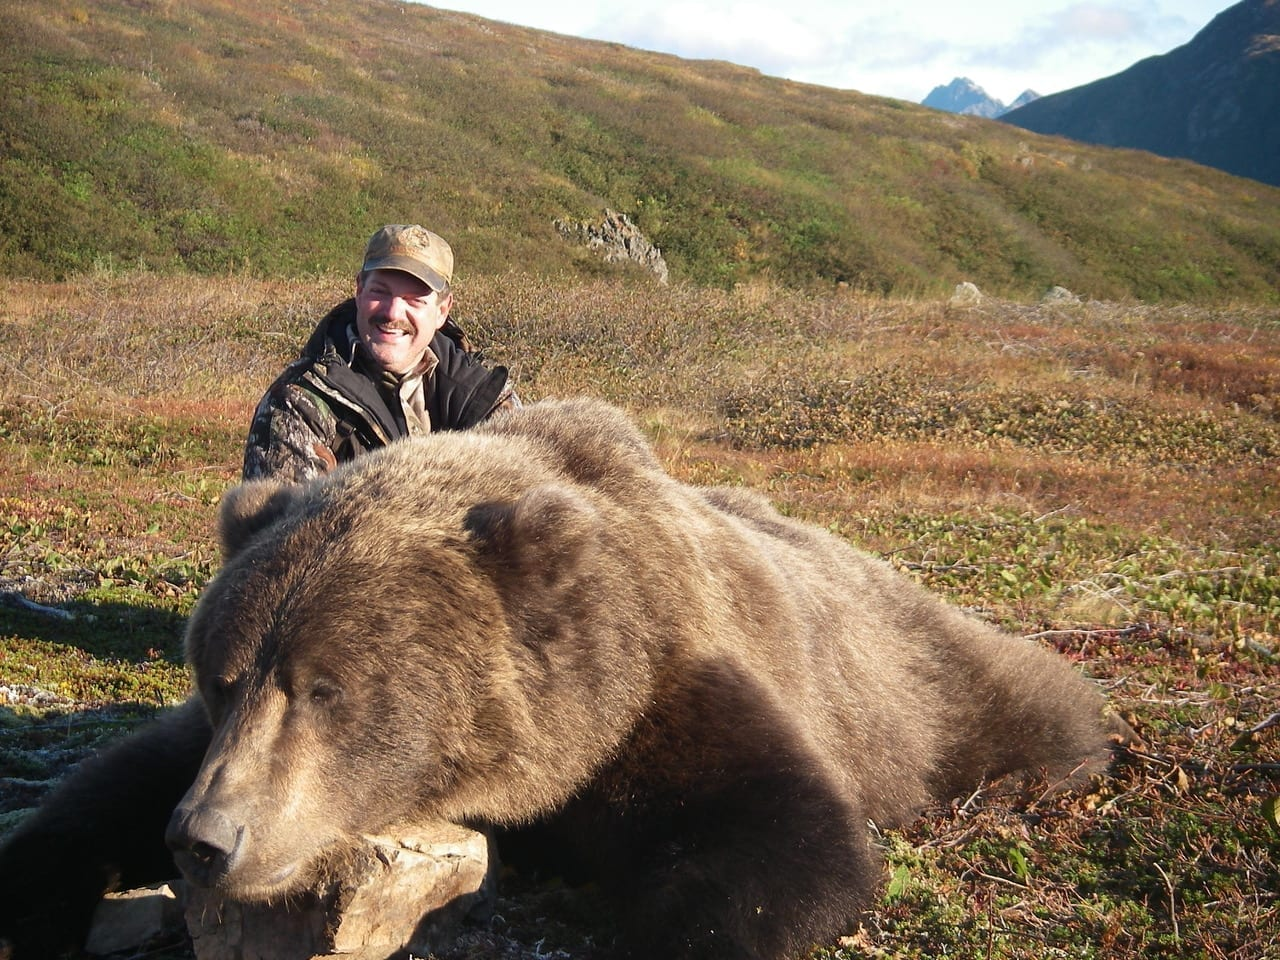 A huge Arctic Grizzly